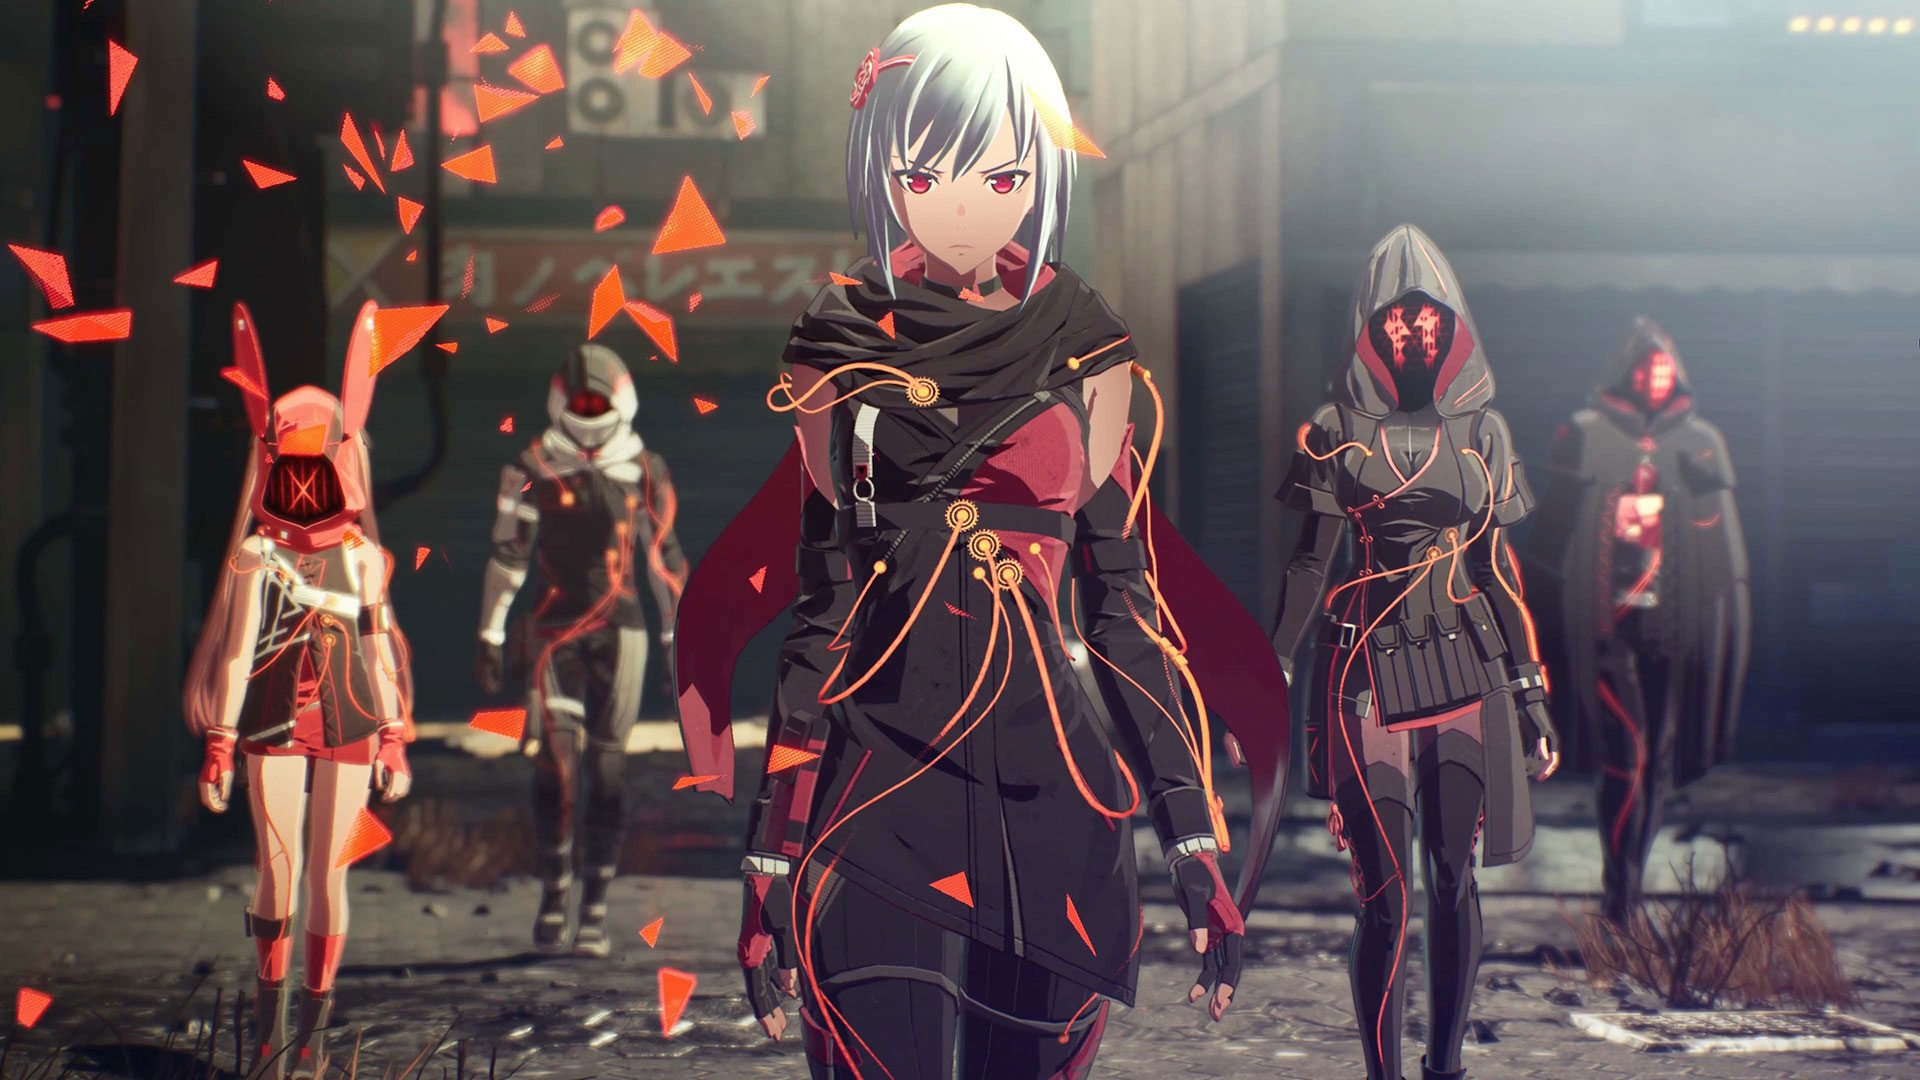 TGS: Scarlet Nexus Introduces New Playable Heroine and Three Other Characters